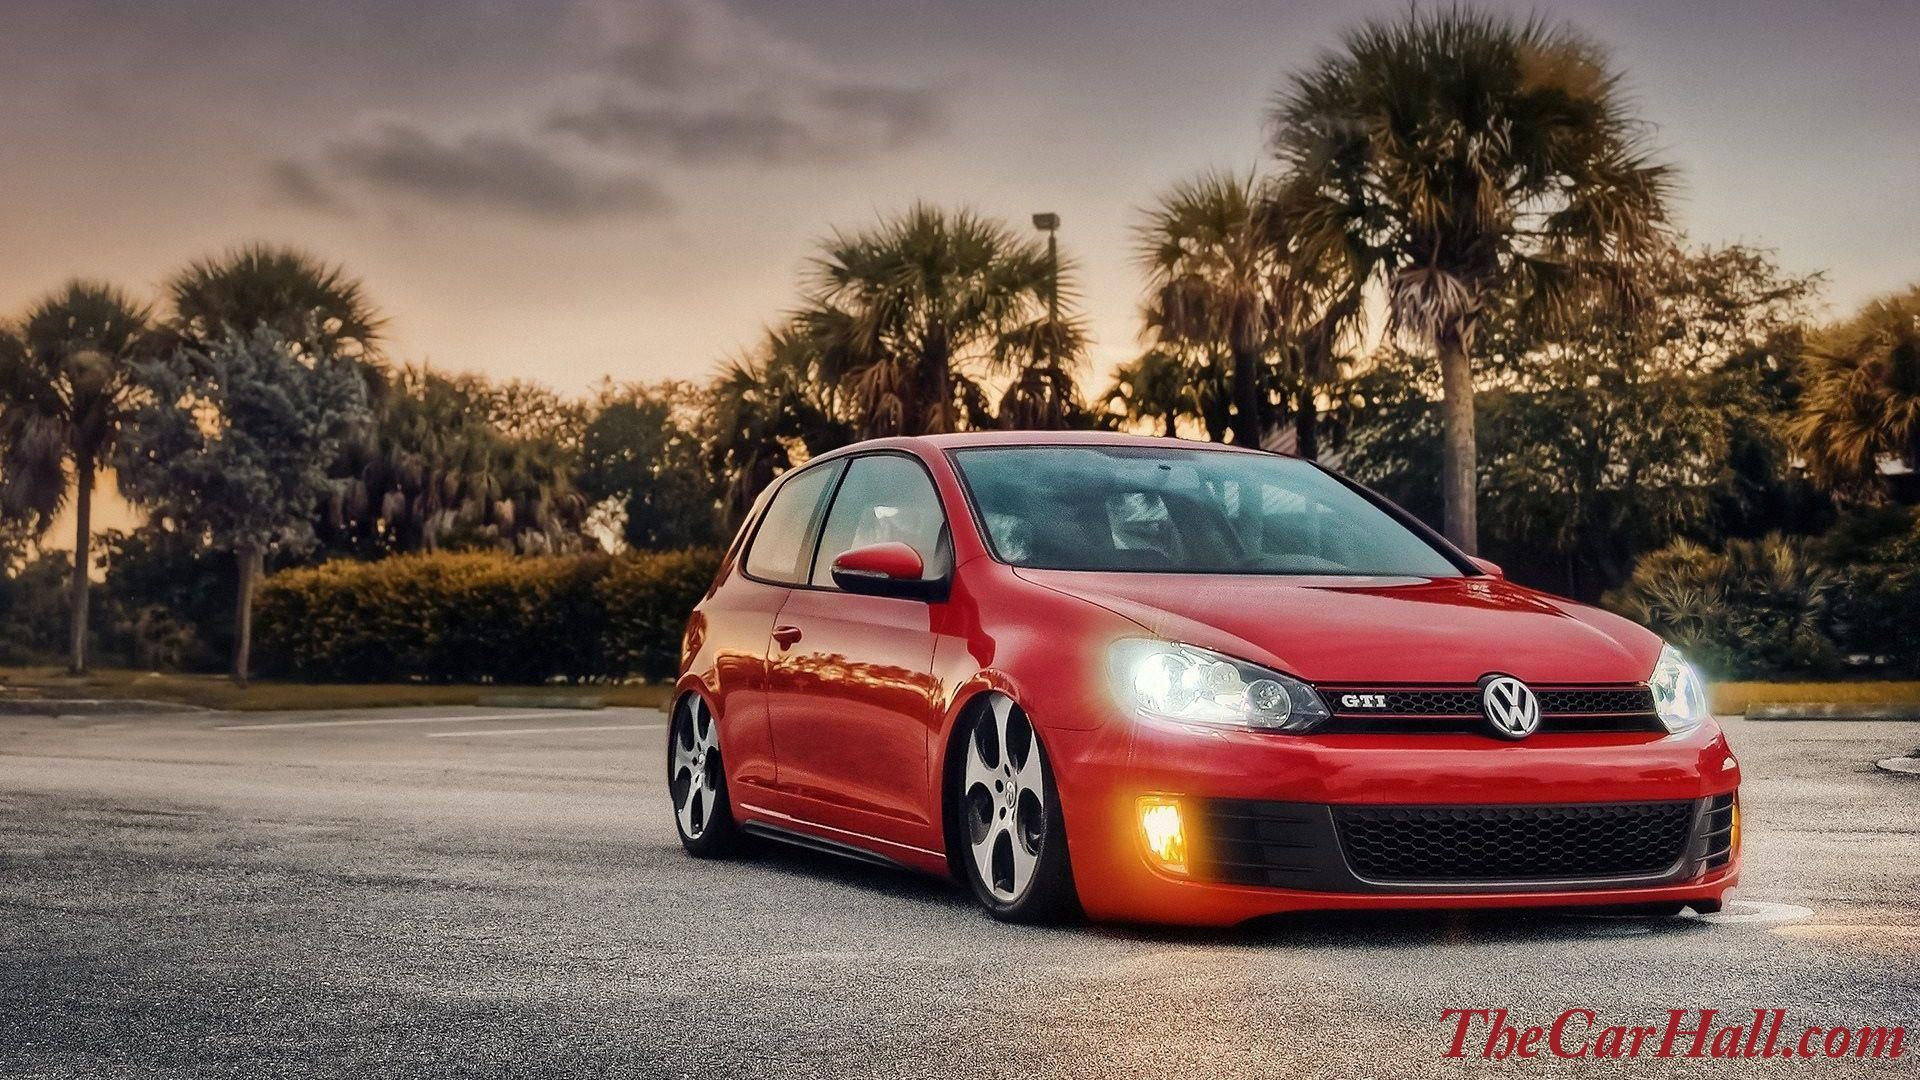 Like Fast Cars Check Out Thecarhall Com For A Listing Of The Top Twenty Fastest Cars On The Planet Vwgolfmk6interior Volkswagen Golf Volkswagen Mk6 Gti